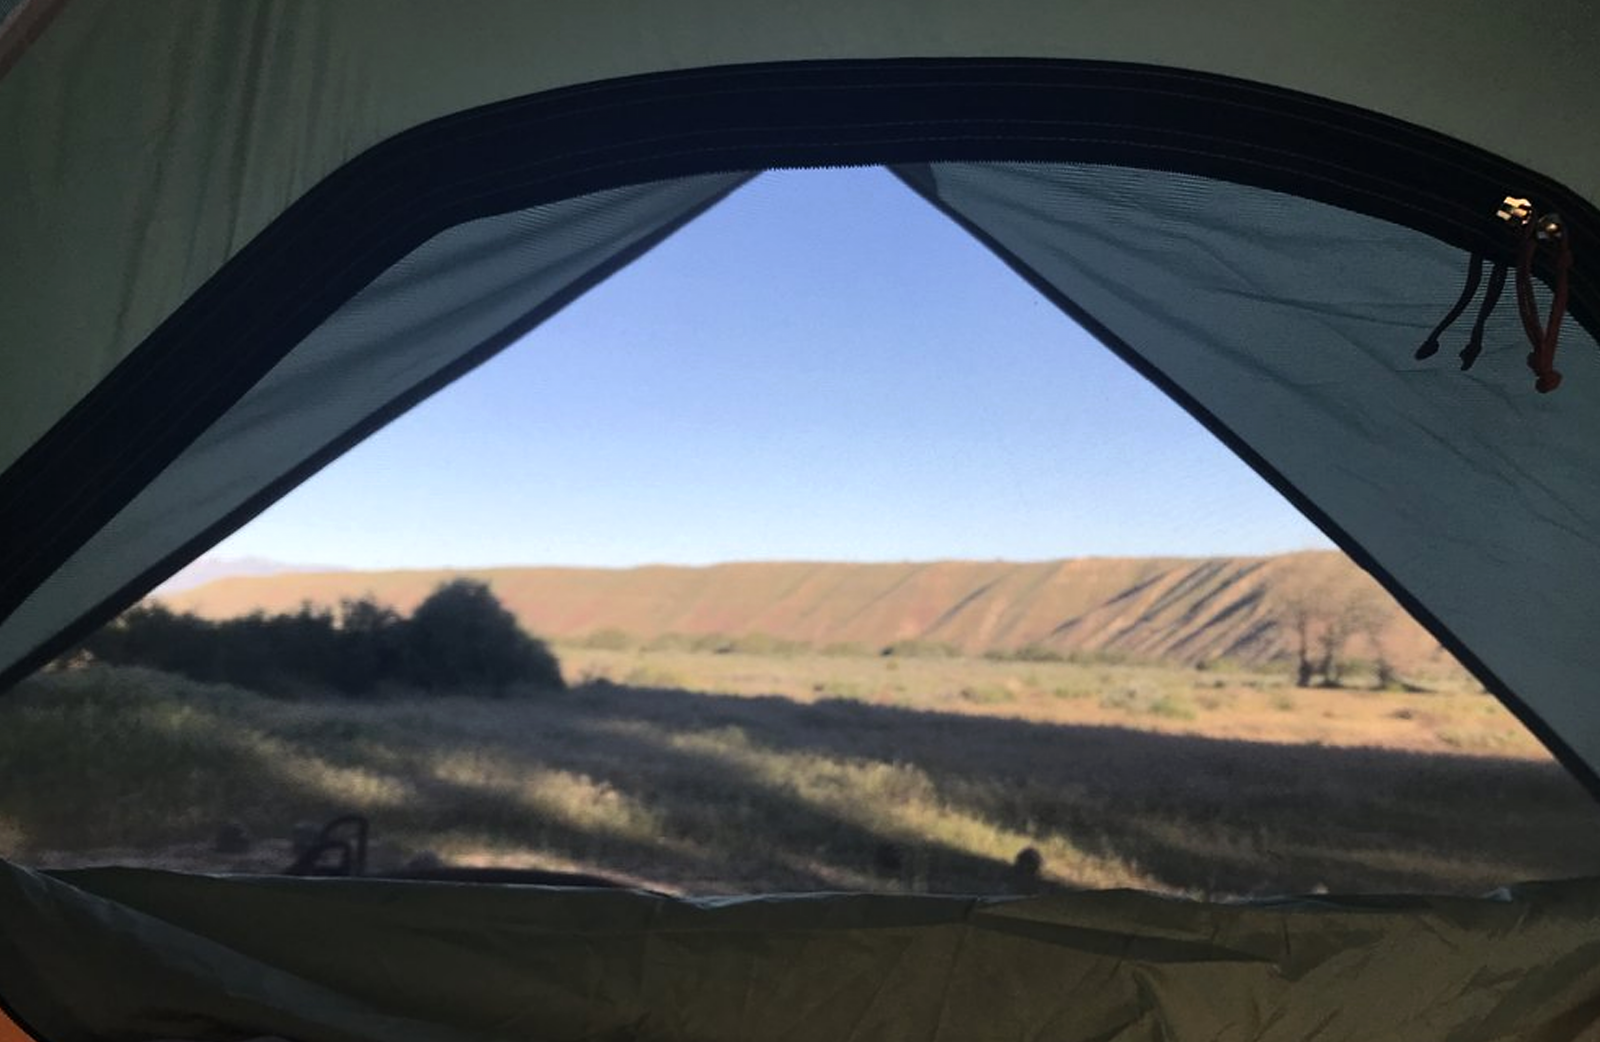 A view from inside looking out in a open tent at Mojave River Forks.